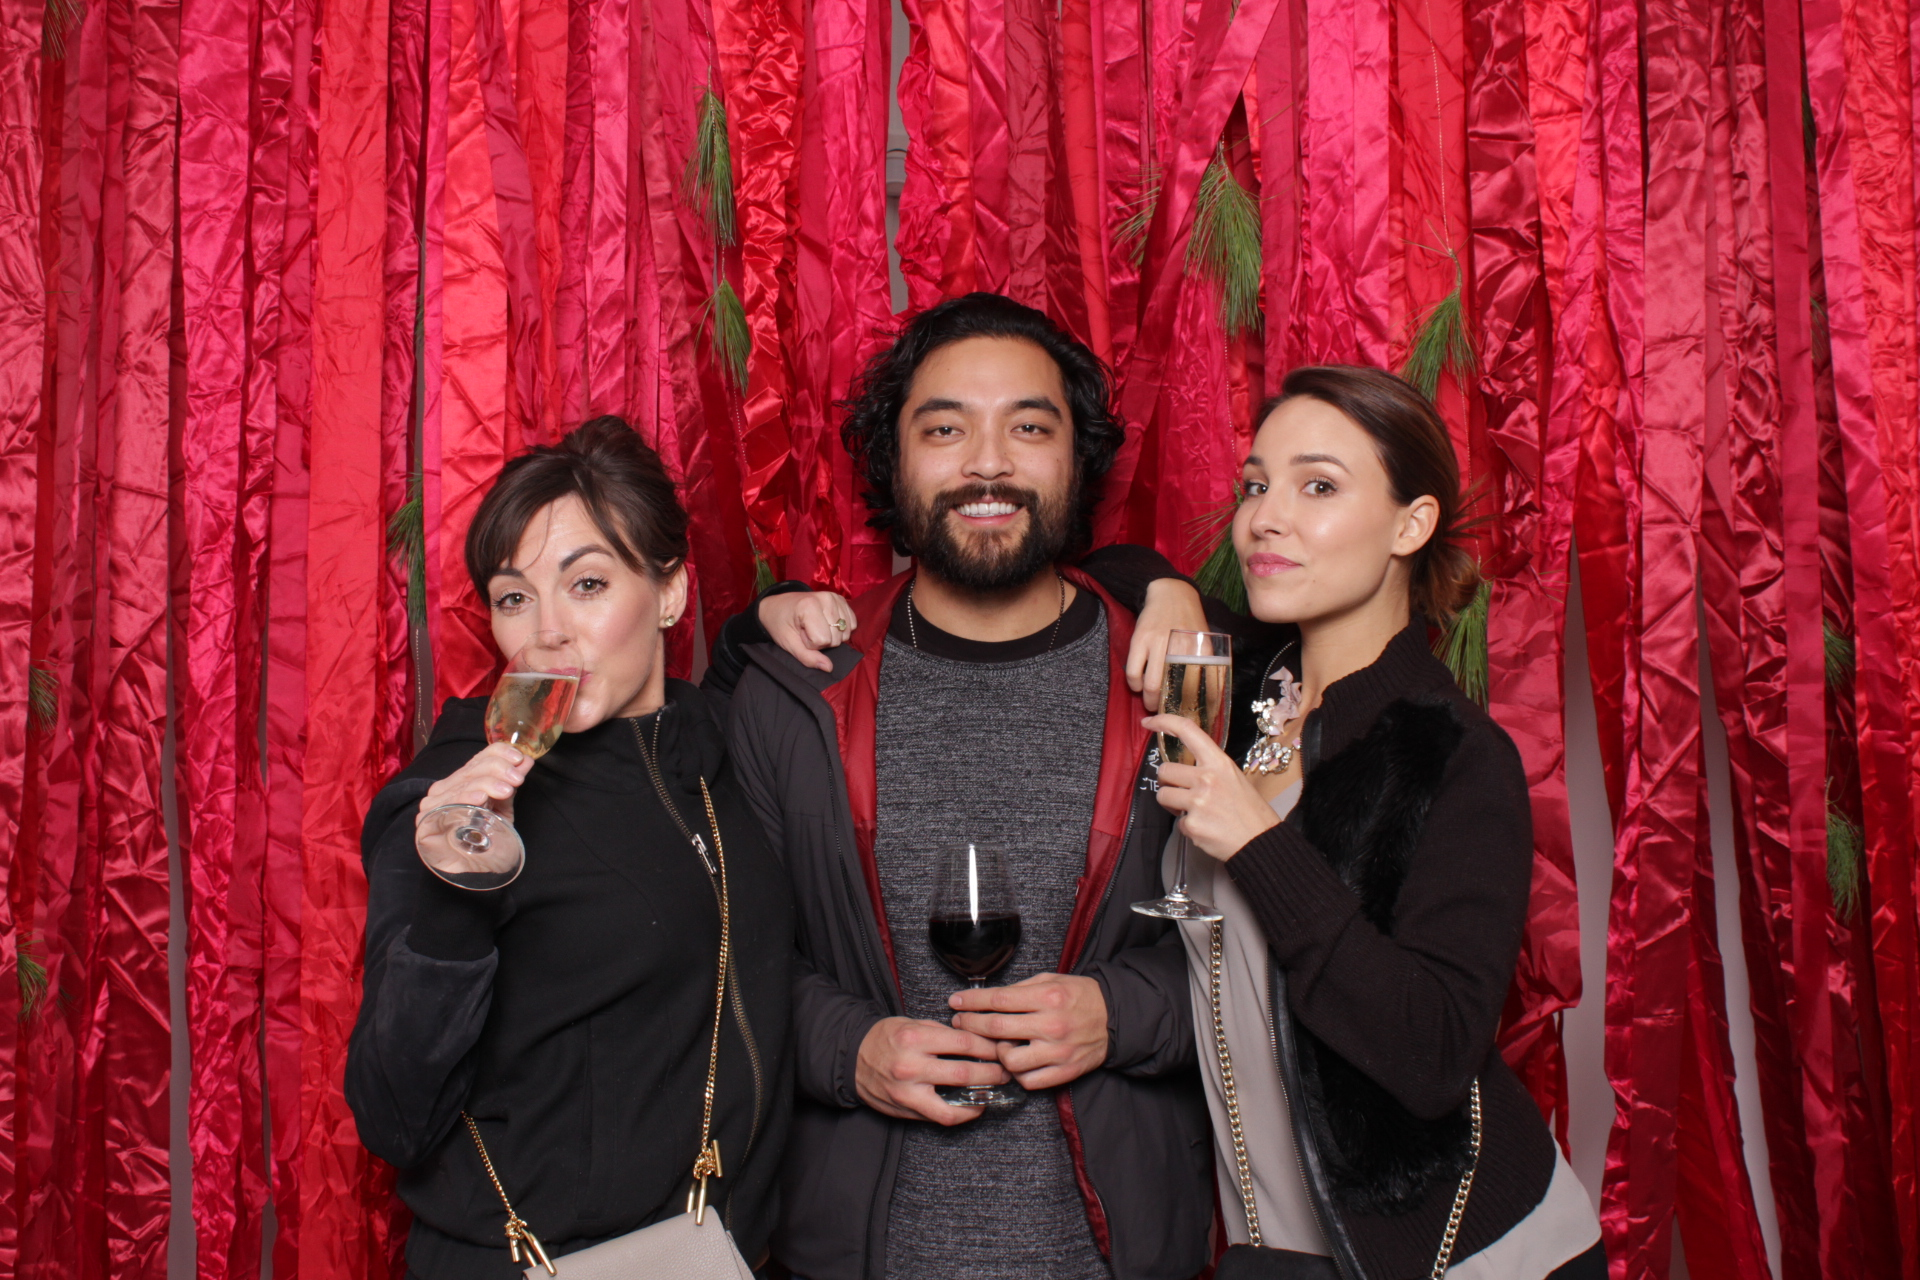 Hutton_House_Minneapolis_Photo_booth_rentals (11).jpg